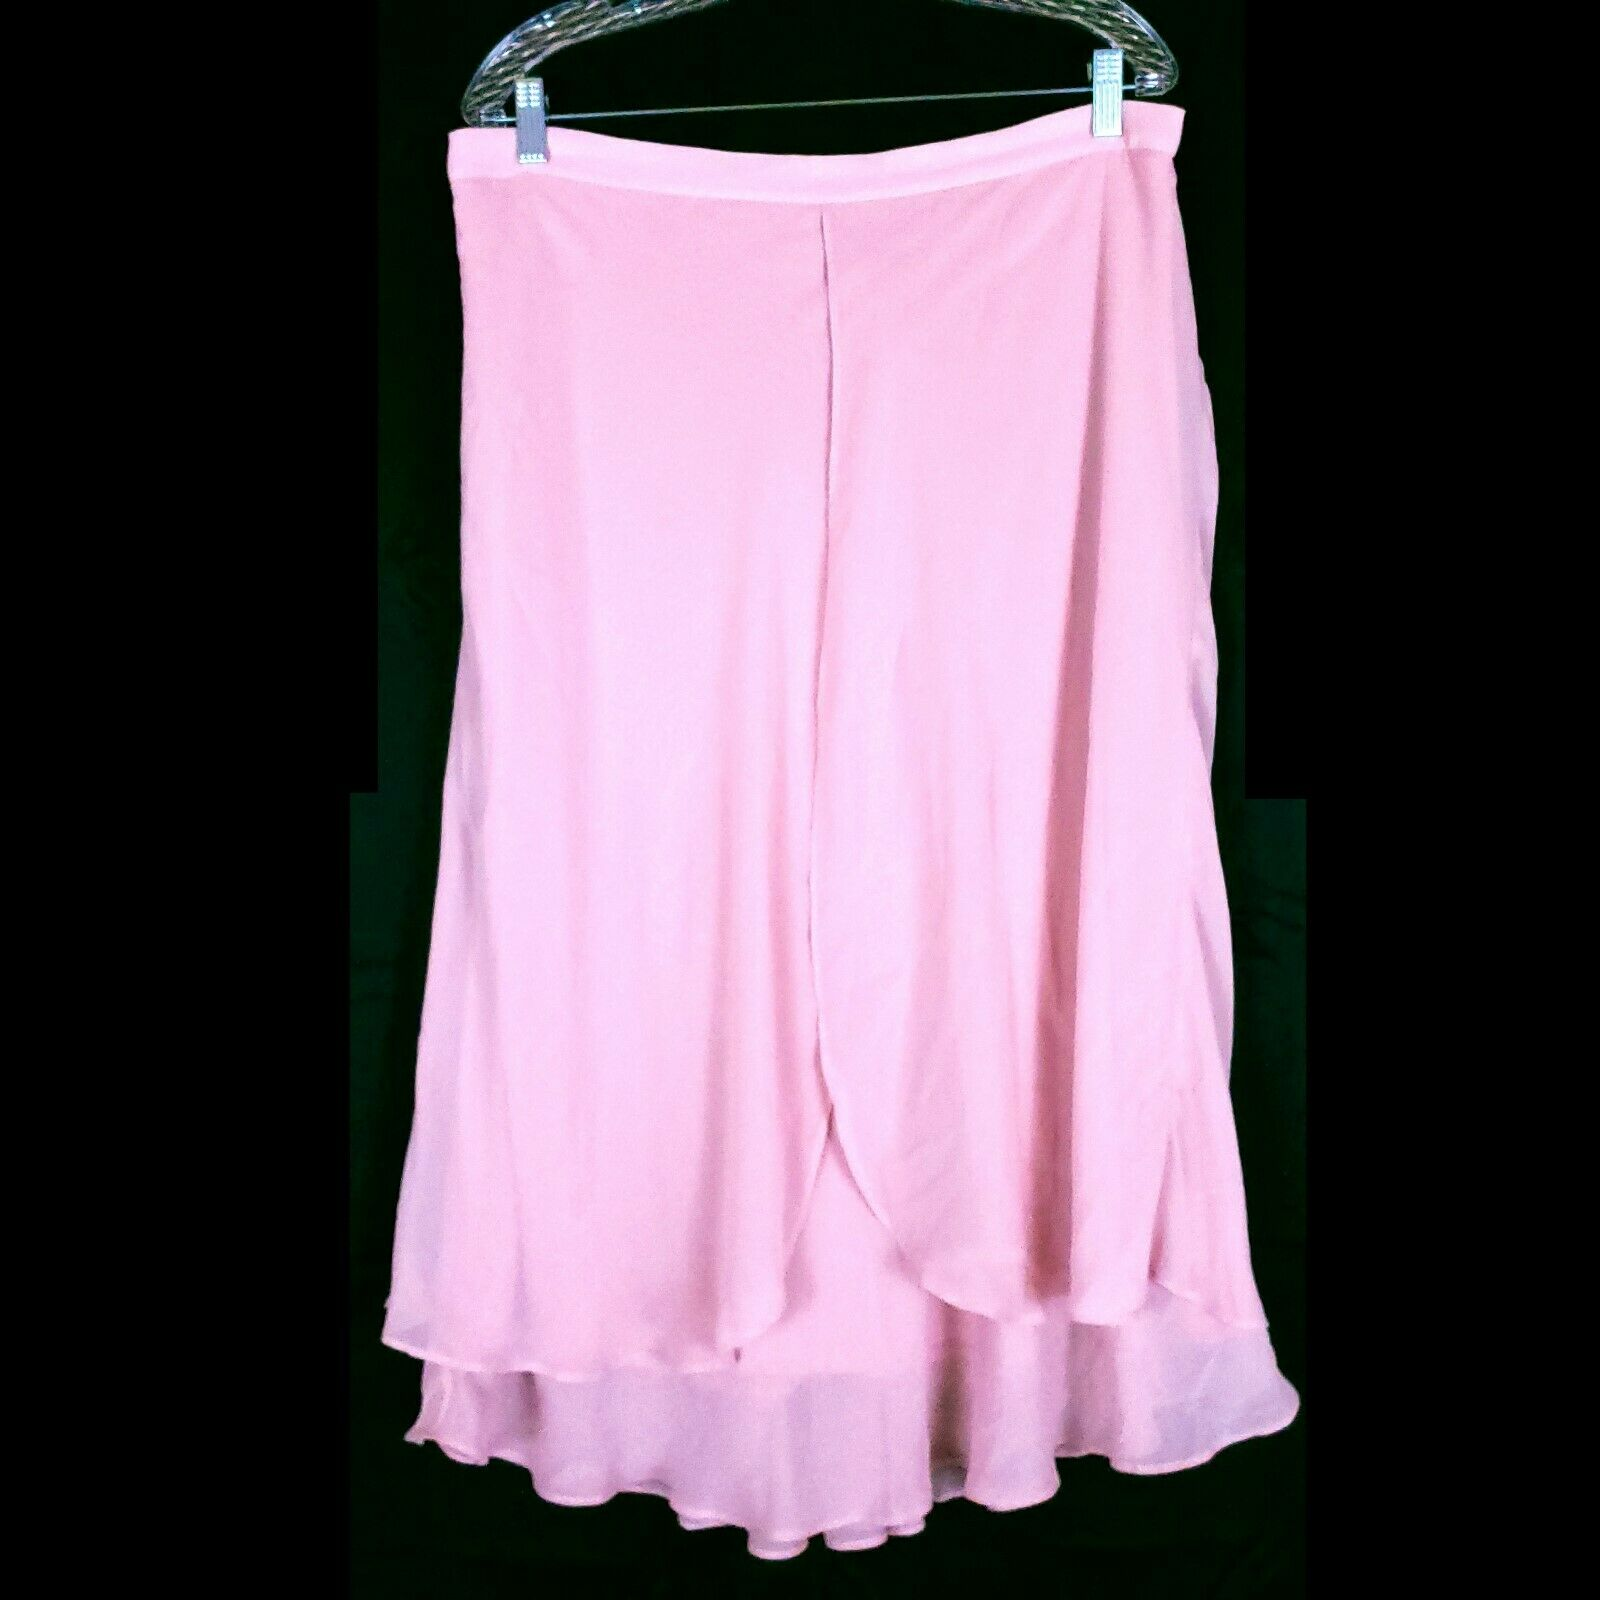 SLNY Women Skirt color Pink Size 14 - NWT